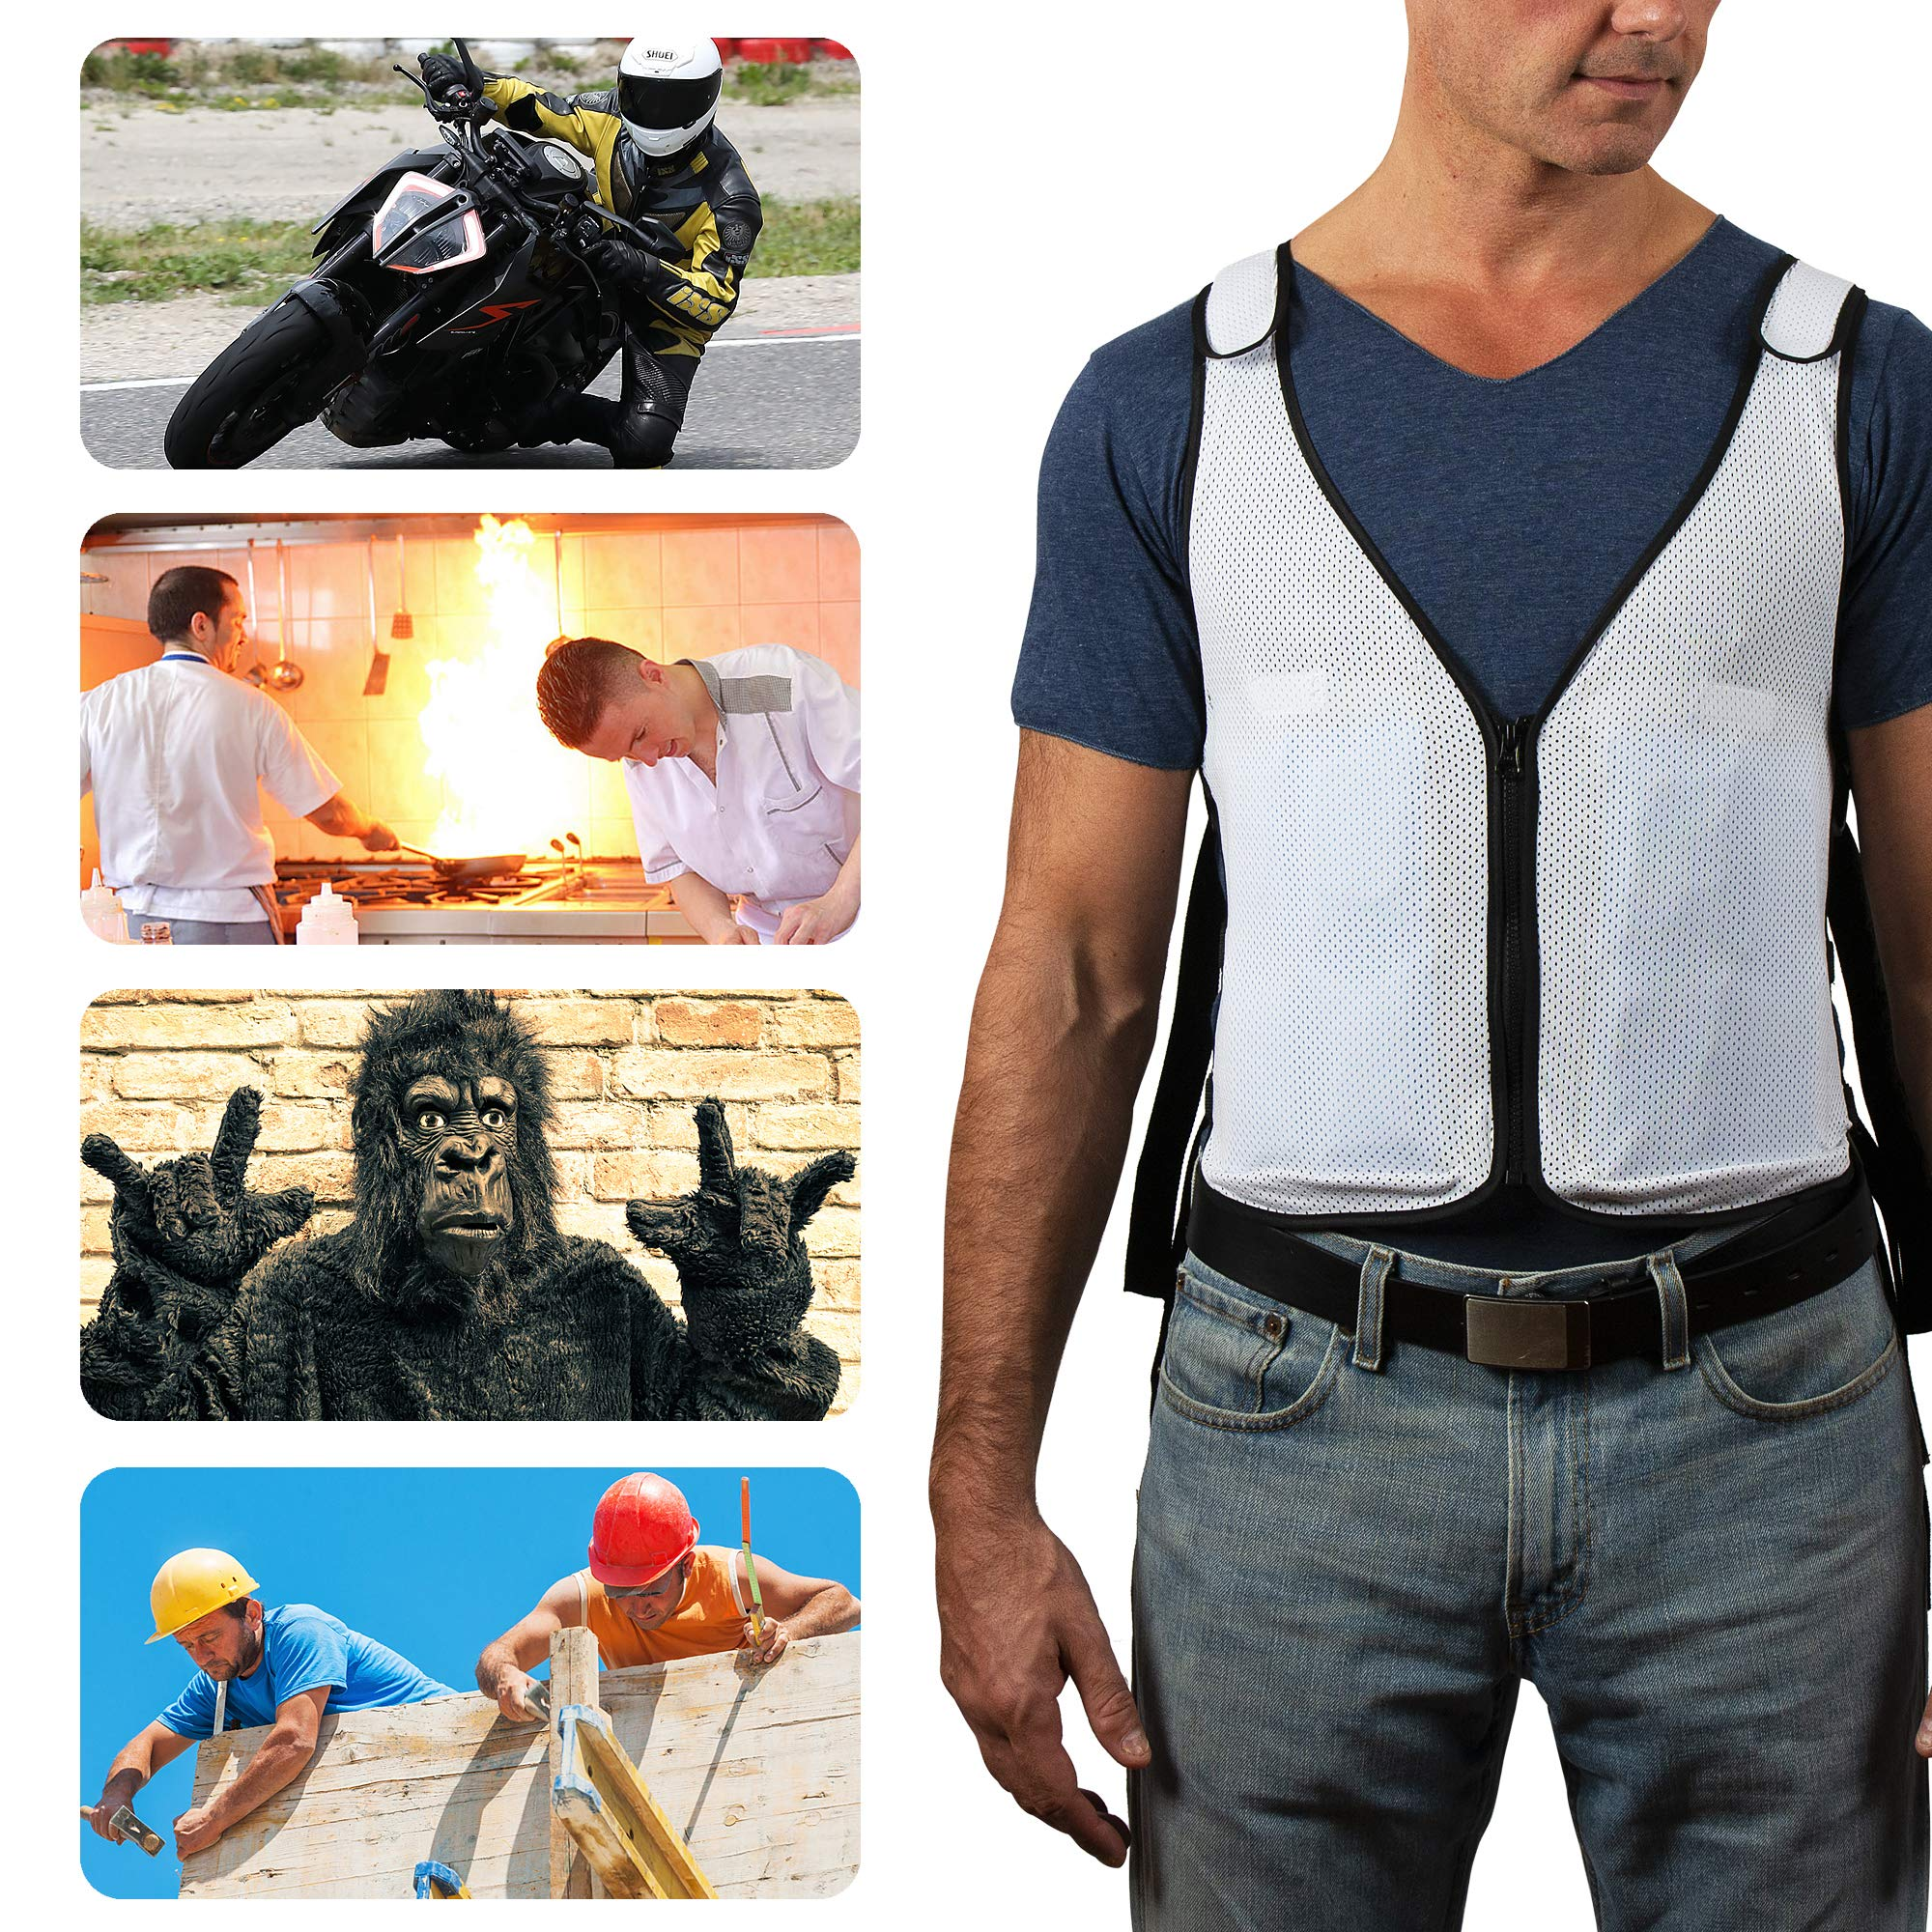 New Home Innovations Cooling Vest | Ice Vest - 8 x Body Ice Packs for Double Cooling Time - #1 Ice Cooling Vest for MS - Sport - Motorcycle - Cooking - Mascot - Cosplay Adjustable Cooling Shirt by New Home Innovations (Image #2)